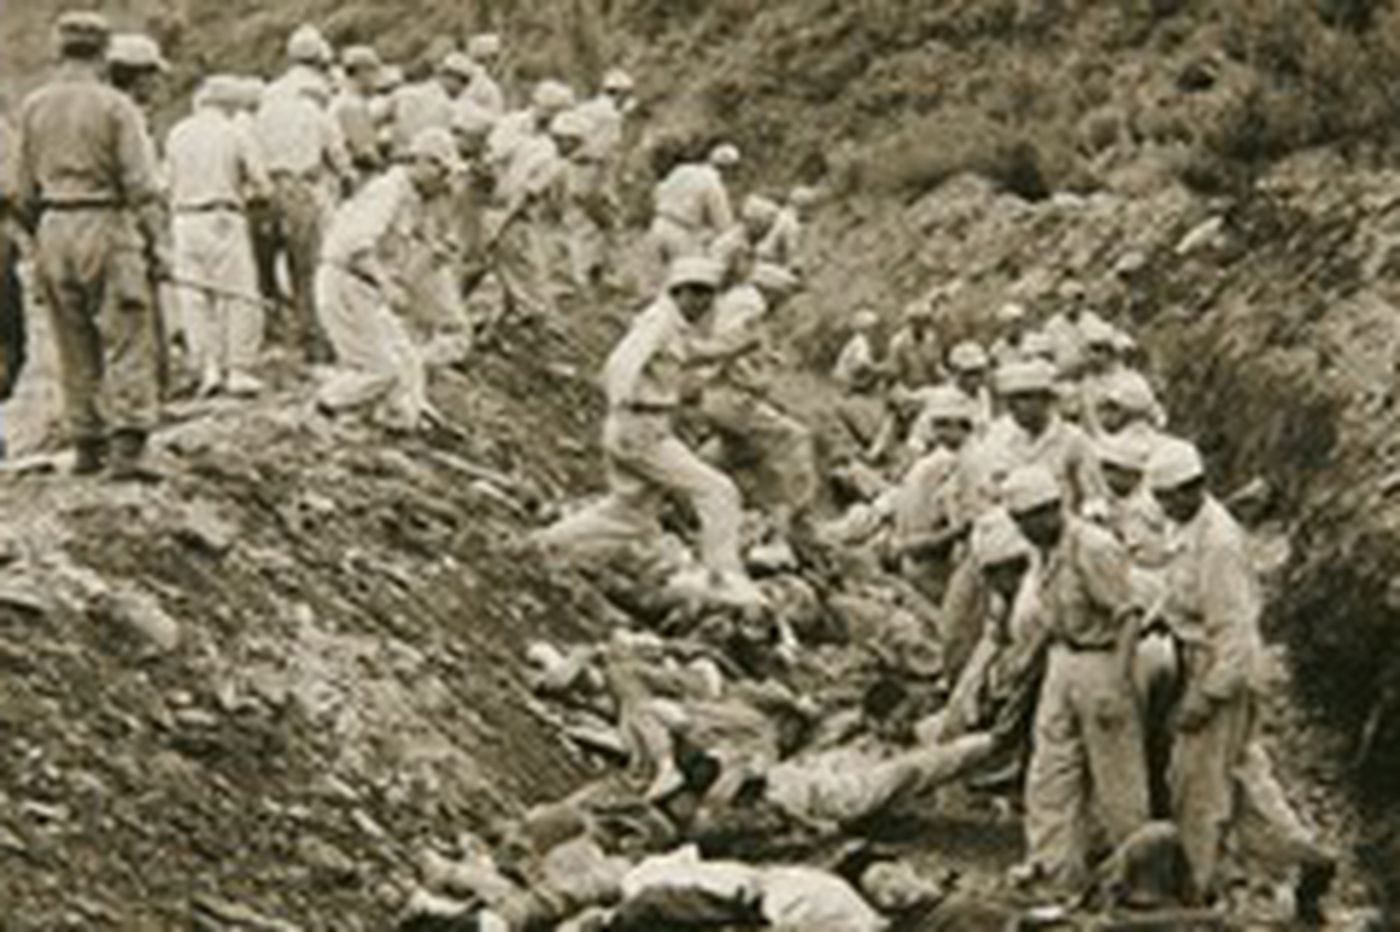 Truth begins to seep out over Korean War massacre Mass graves shed light on 1950 campaign that left thousands dead in South as U.S. turned blind eye